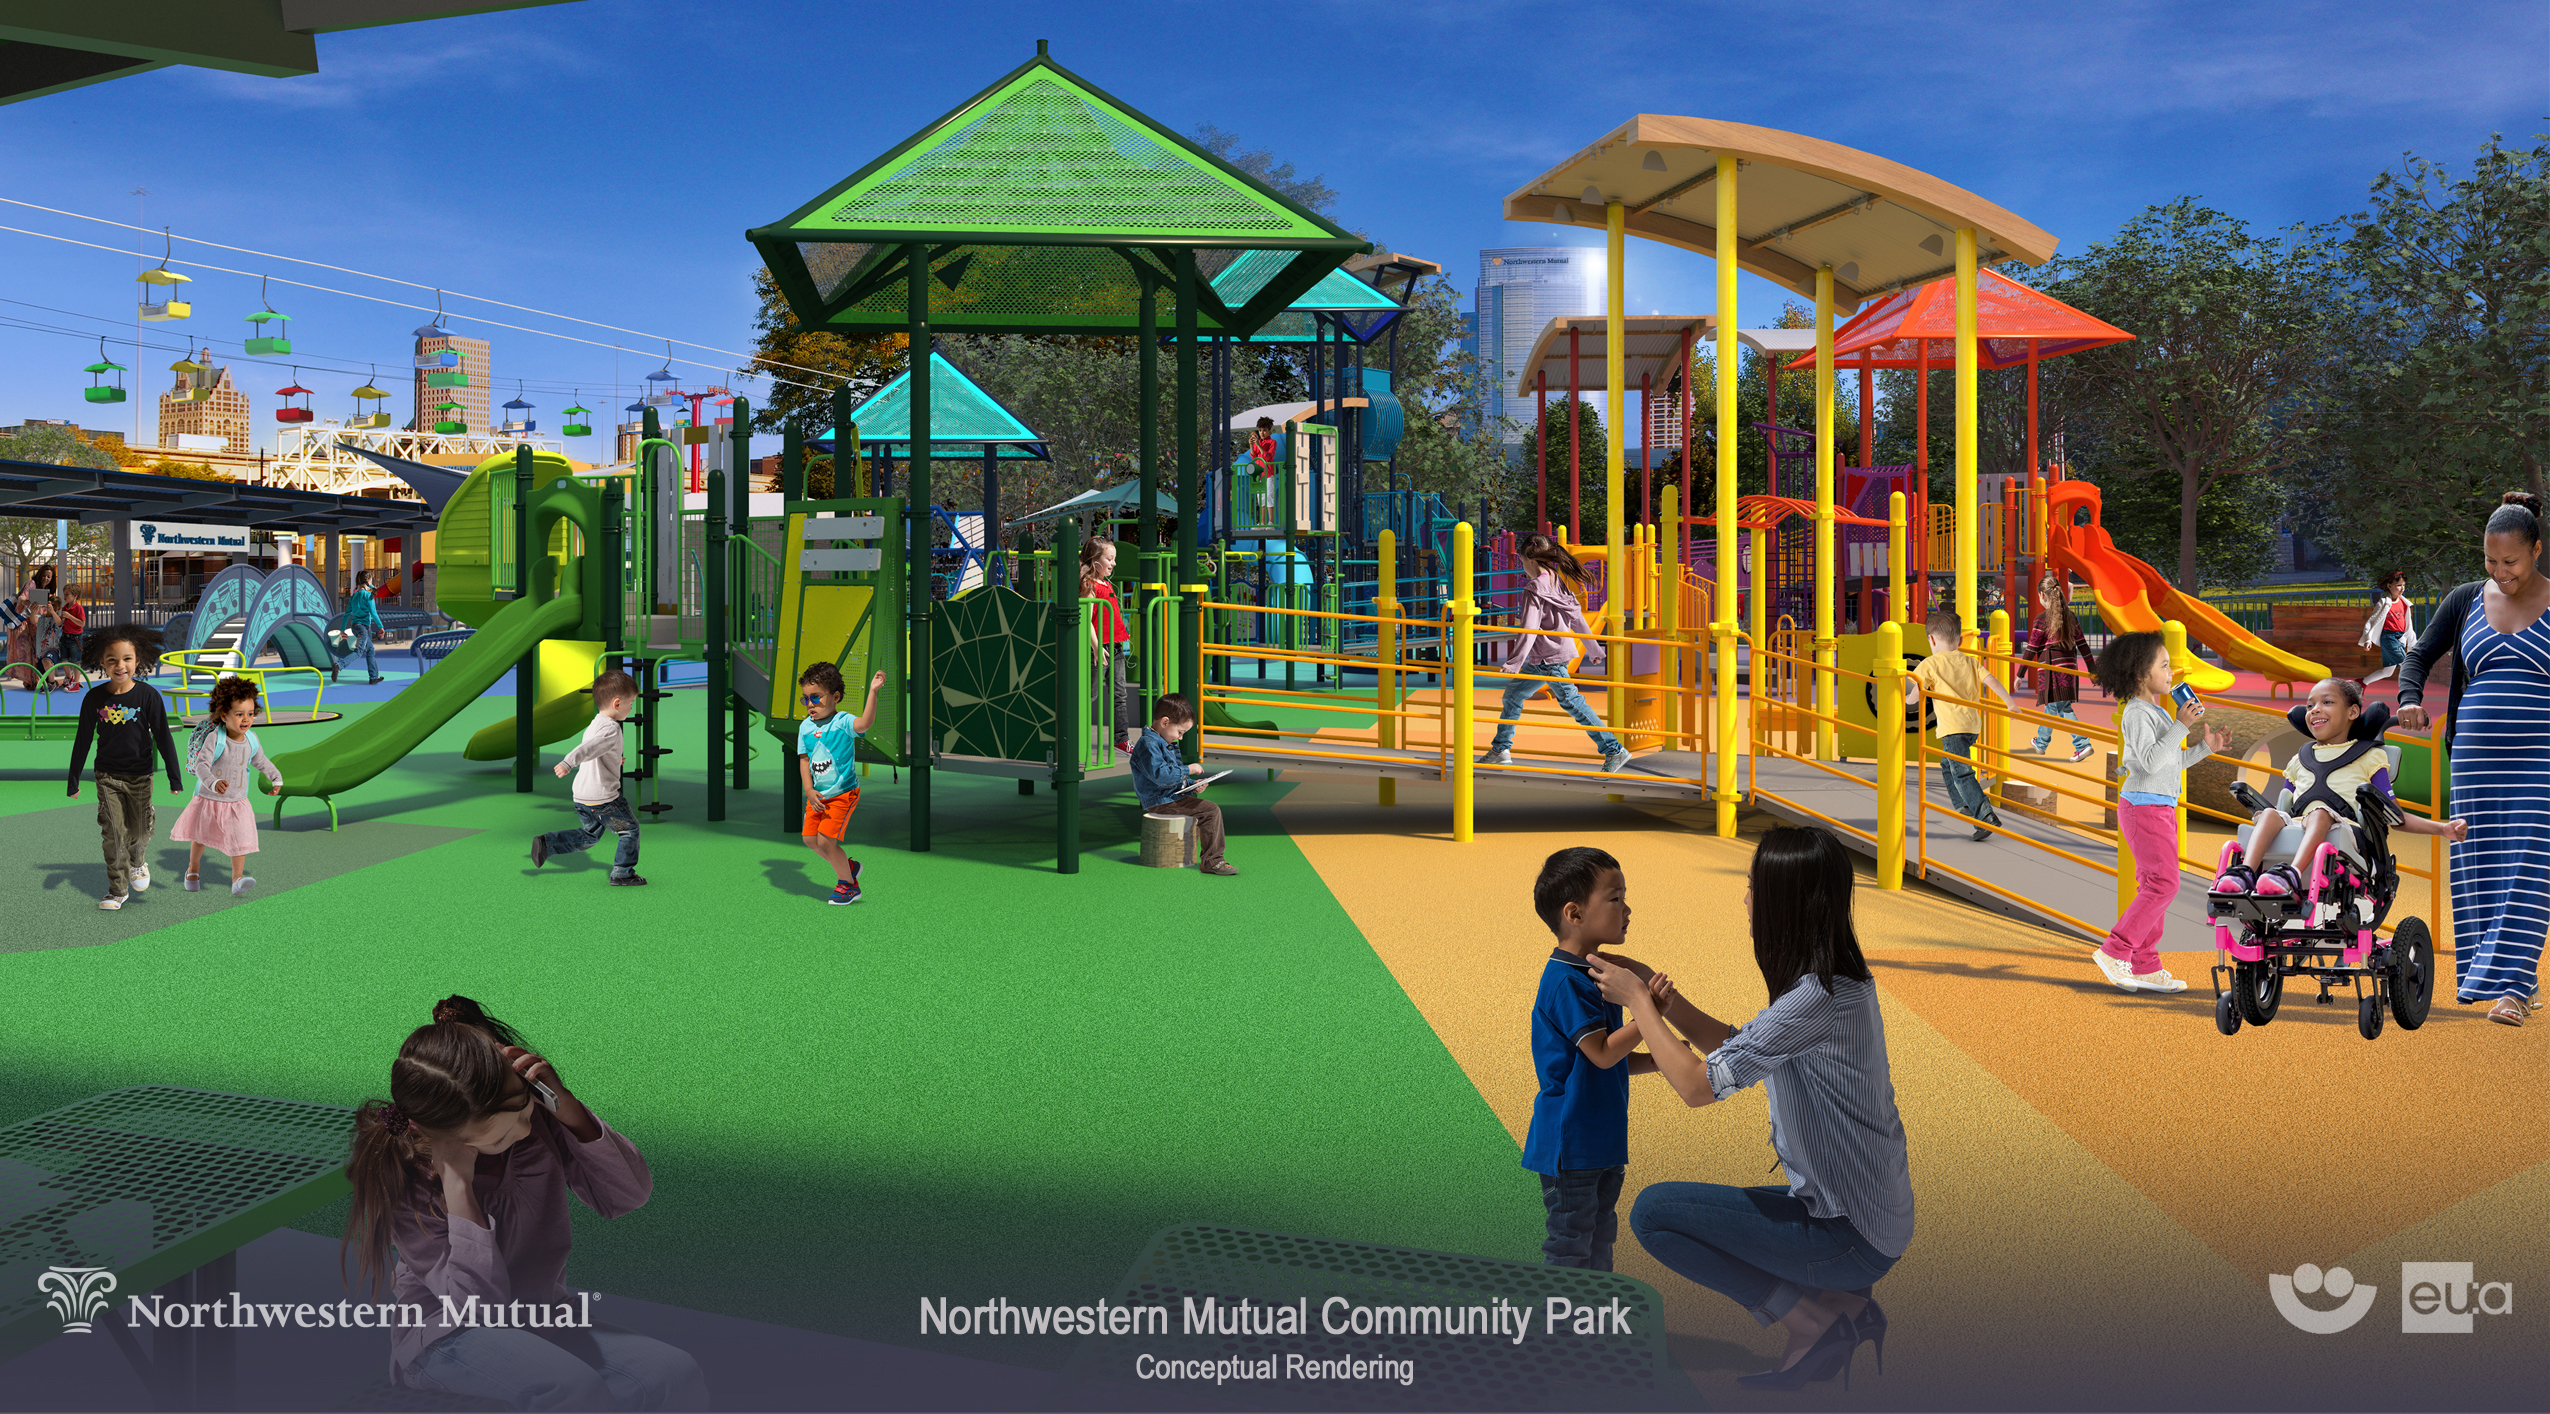 Milwaukee World Festival, Inc. Announces Redevelopment of Northwestern Mutual Children's Theater & Playzone as Community Park